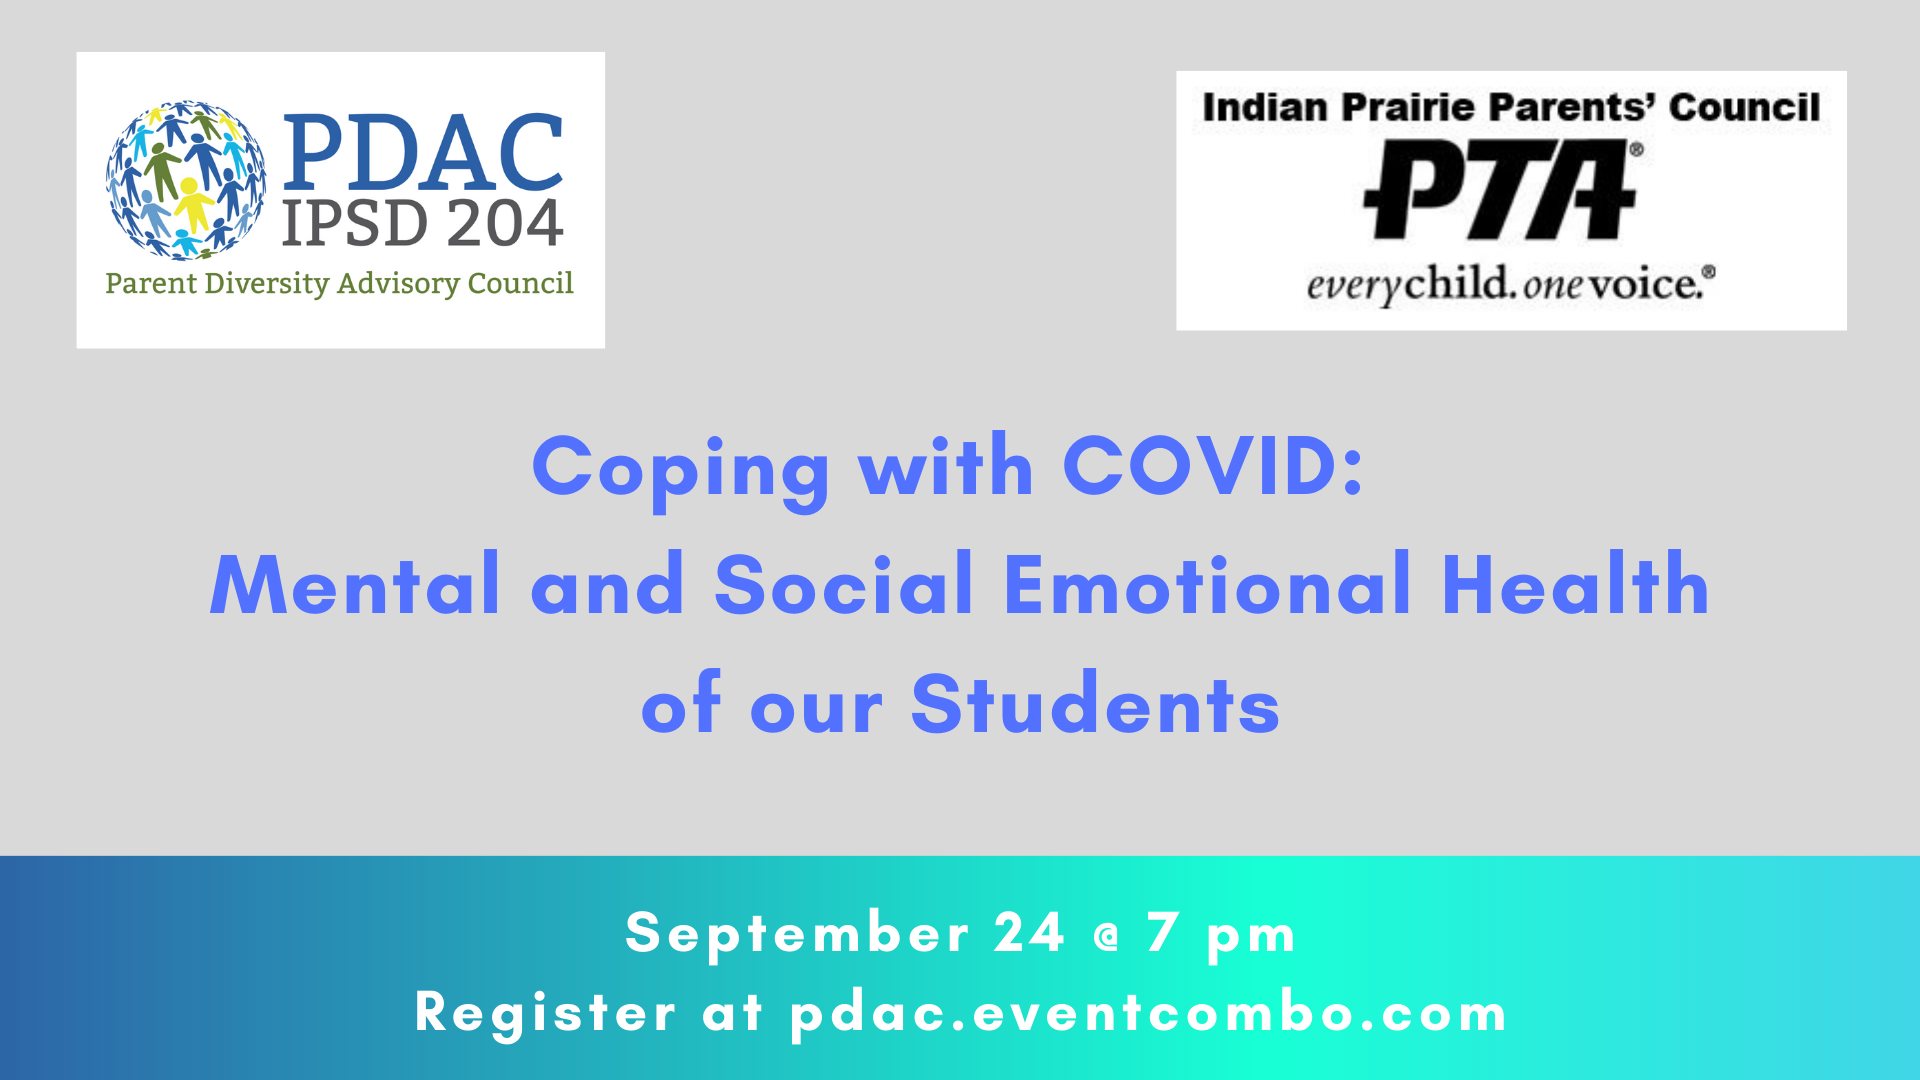 Coping with COVID: Mental and Social Emotional Health of our Students